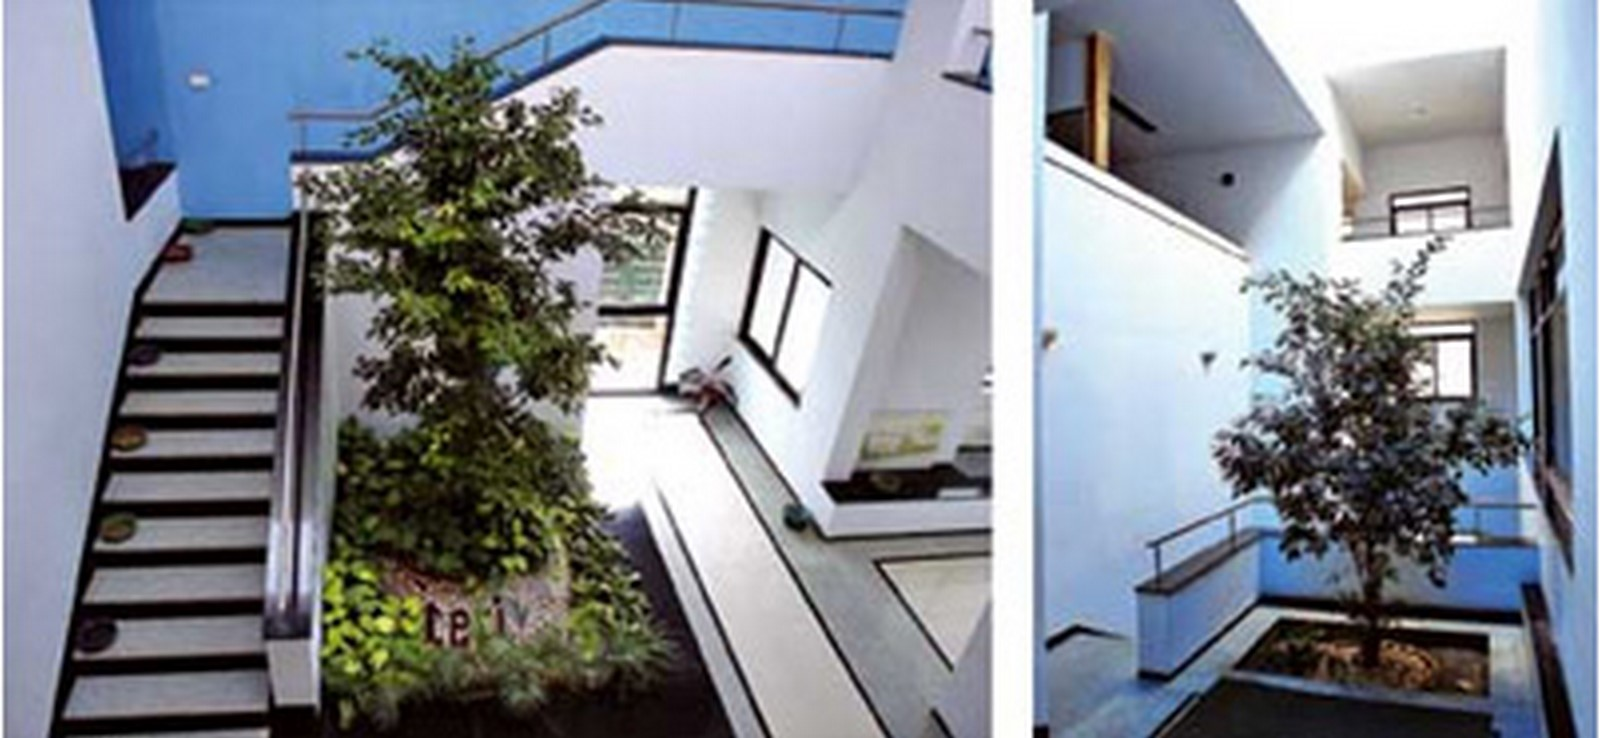 Climate responsive architecture in Indian cities - Solar Passive Hostel - Sheet5